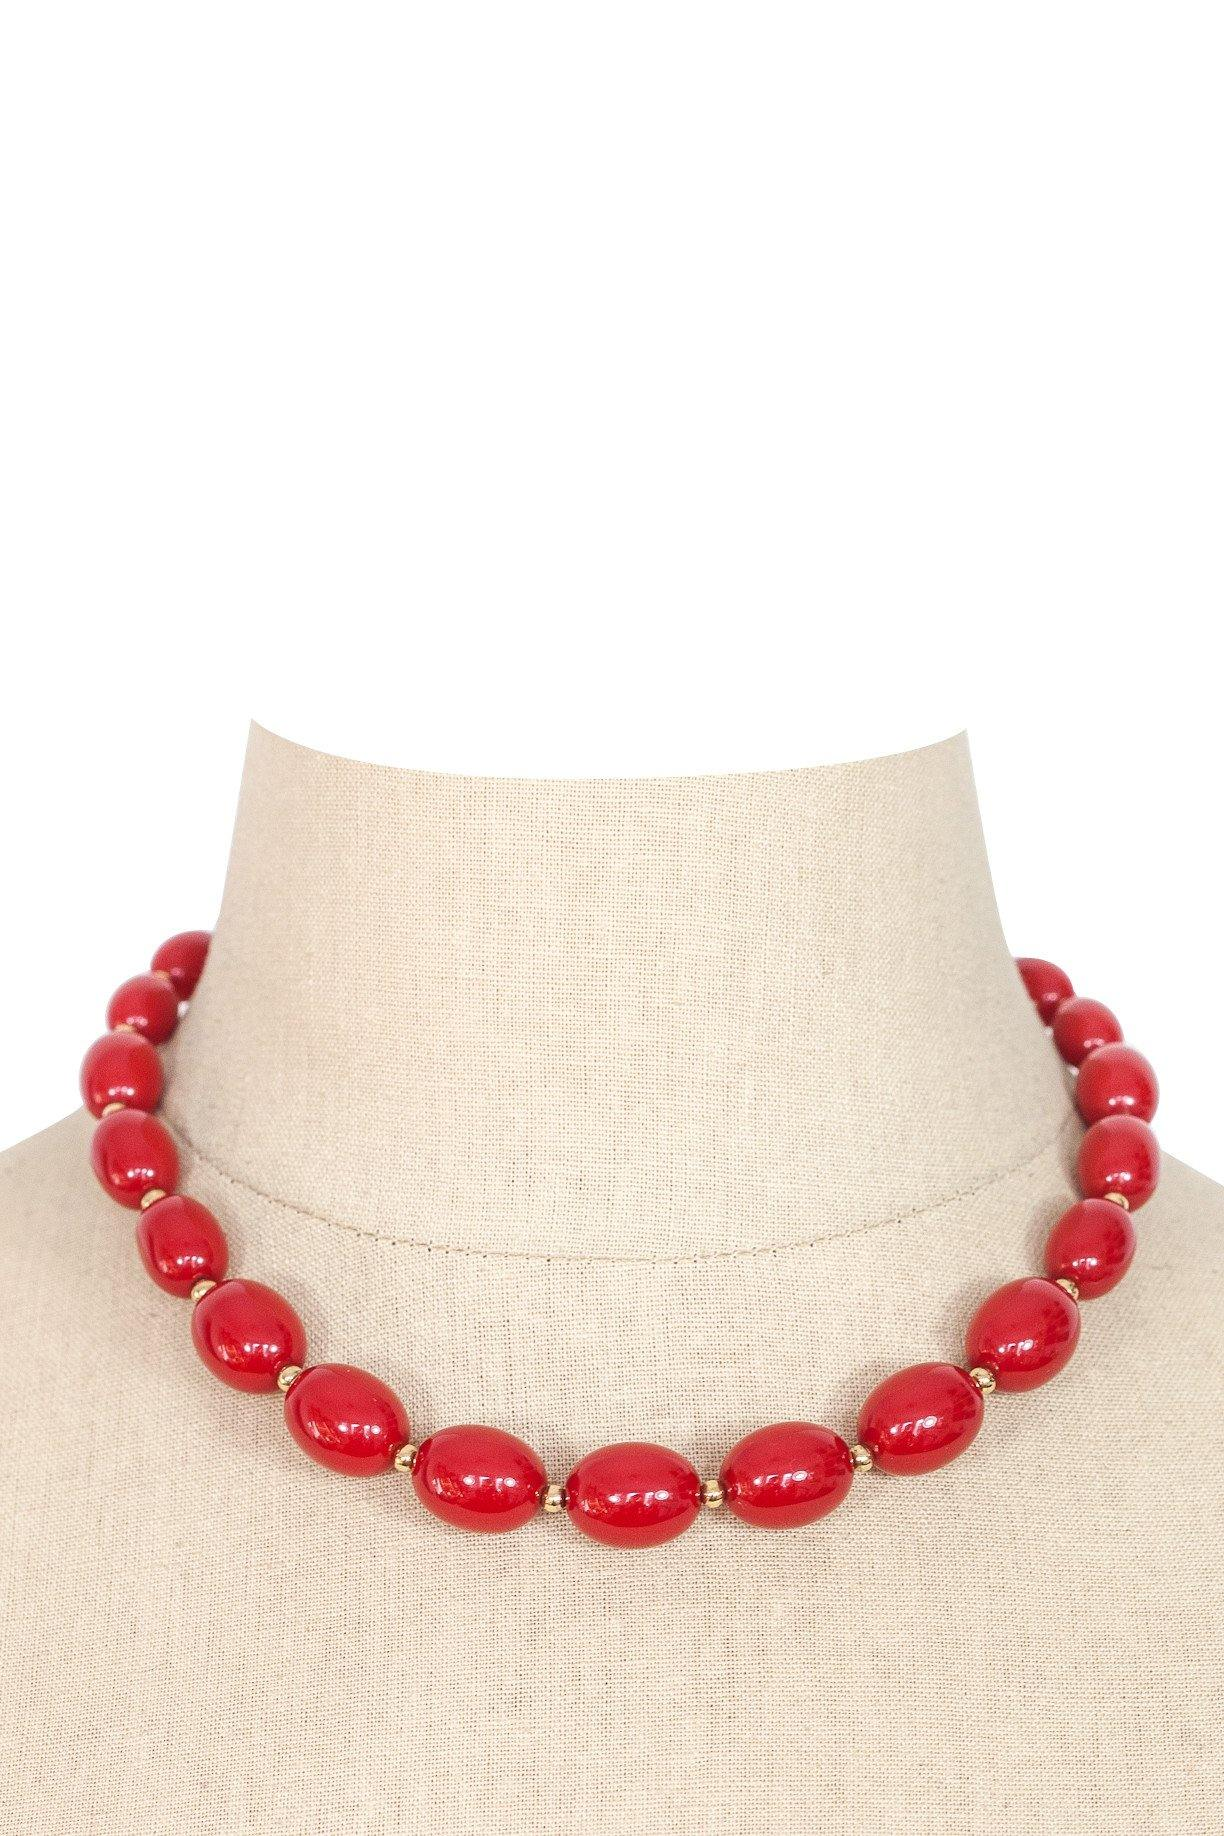 80's__Monet__Red Beaded Necklace